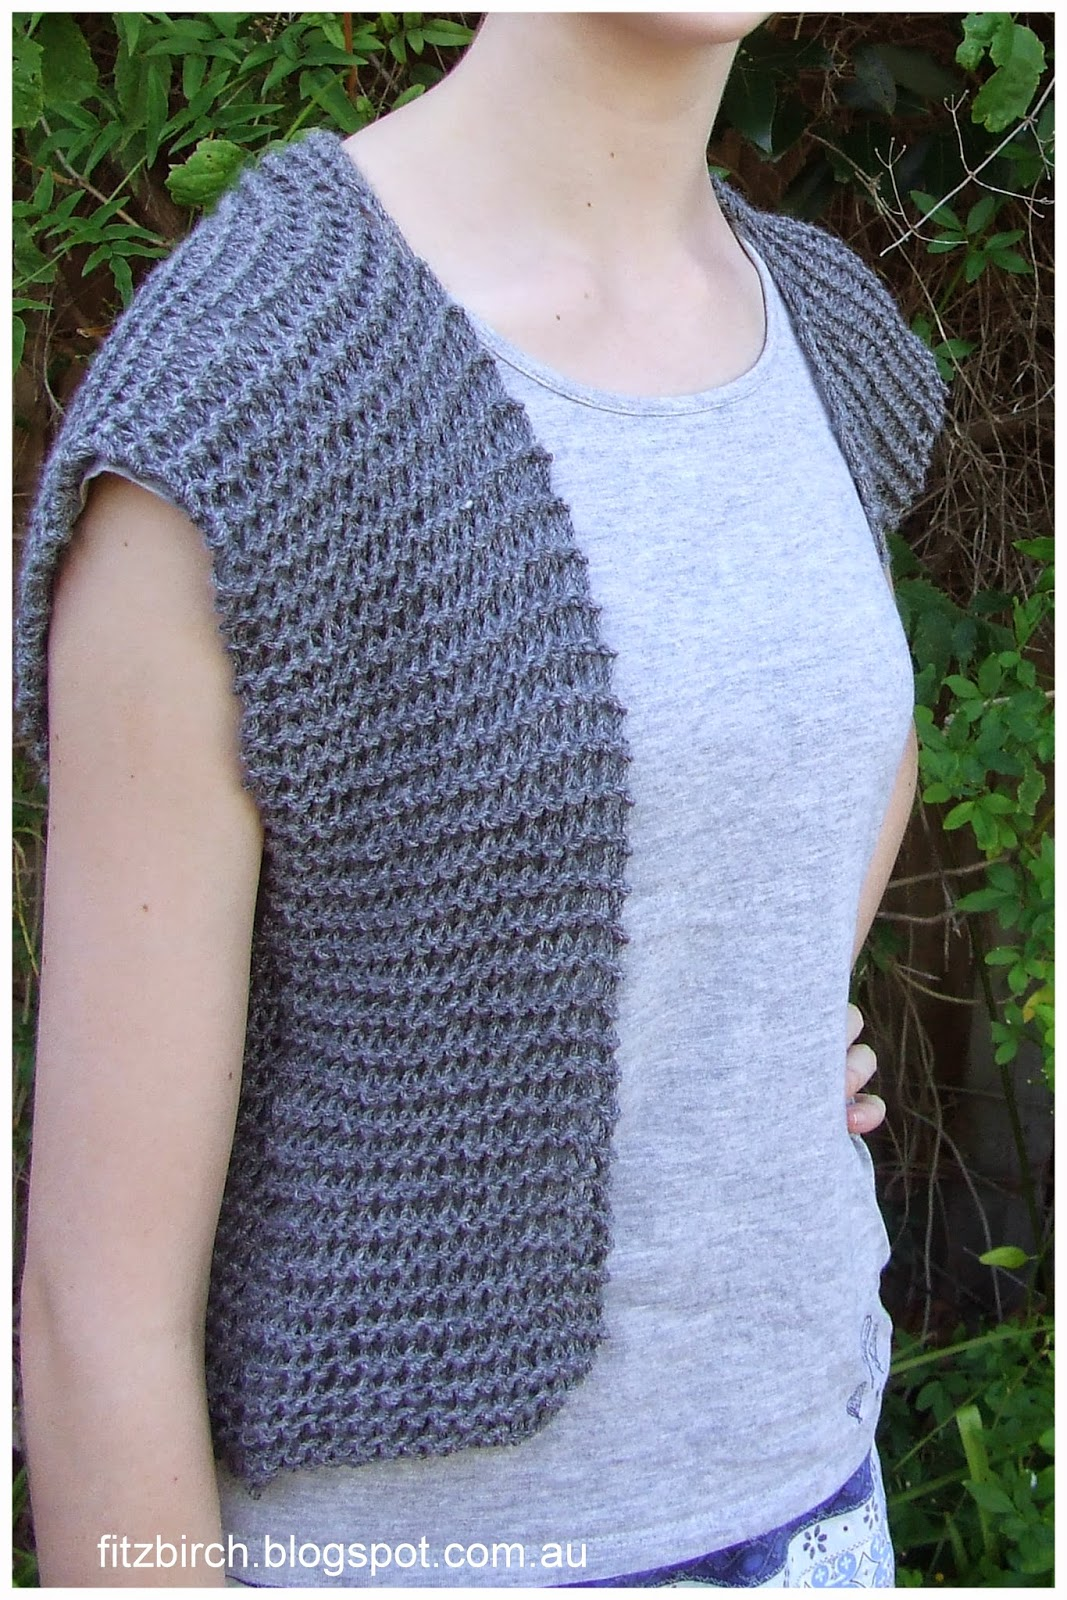 Knitting Patterns For Beginners Garter Stitch : FitzBirch Crafts: Garter Stitch Beginner Vest